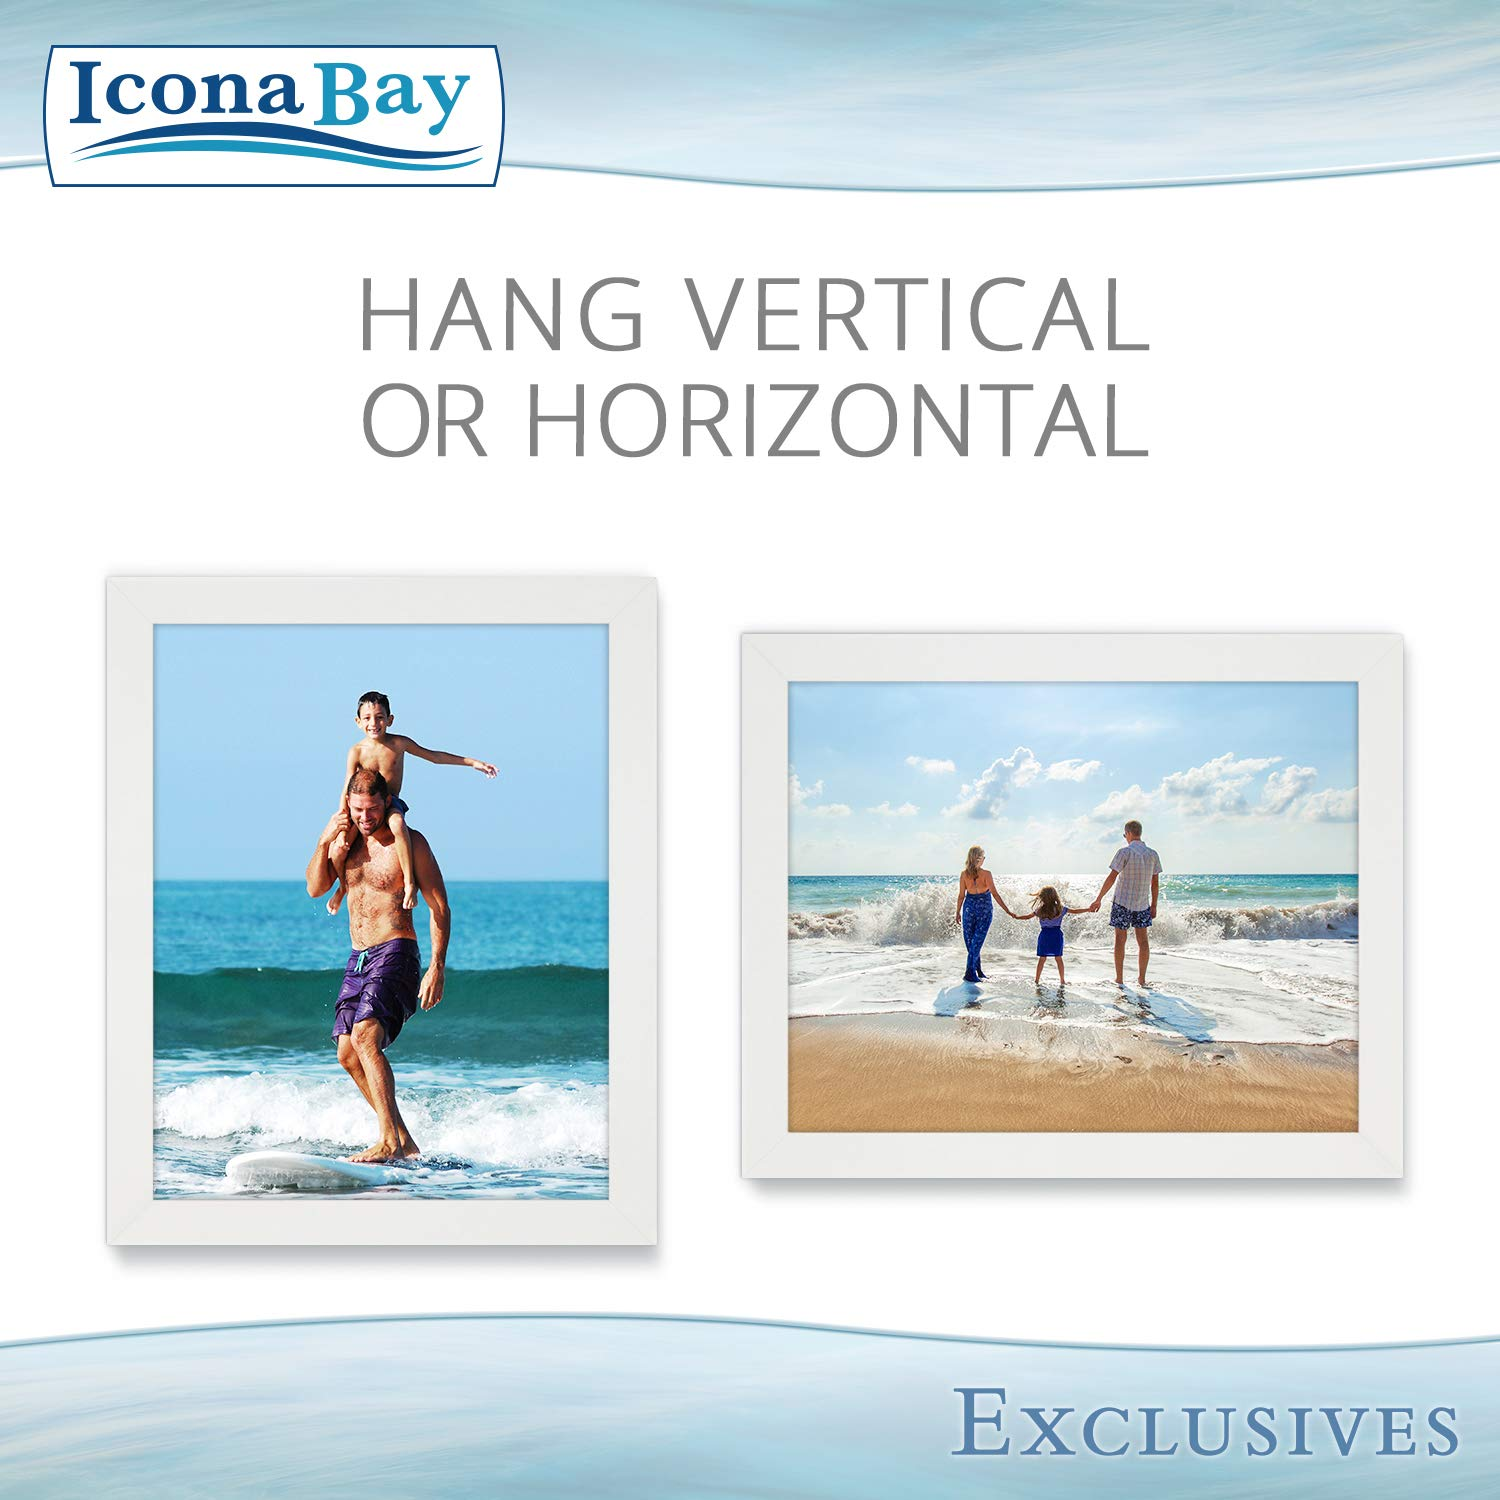 Icona Bay 8x10 Picture Frame (6 Pack, White), White Sturdy Wood Composite Photo Frame 8 x 10, Wall or Table Mount, Set of 6 Exclusives Collection by Icona Bay (Image #4)